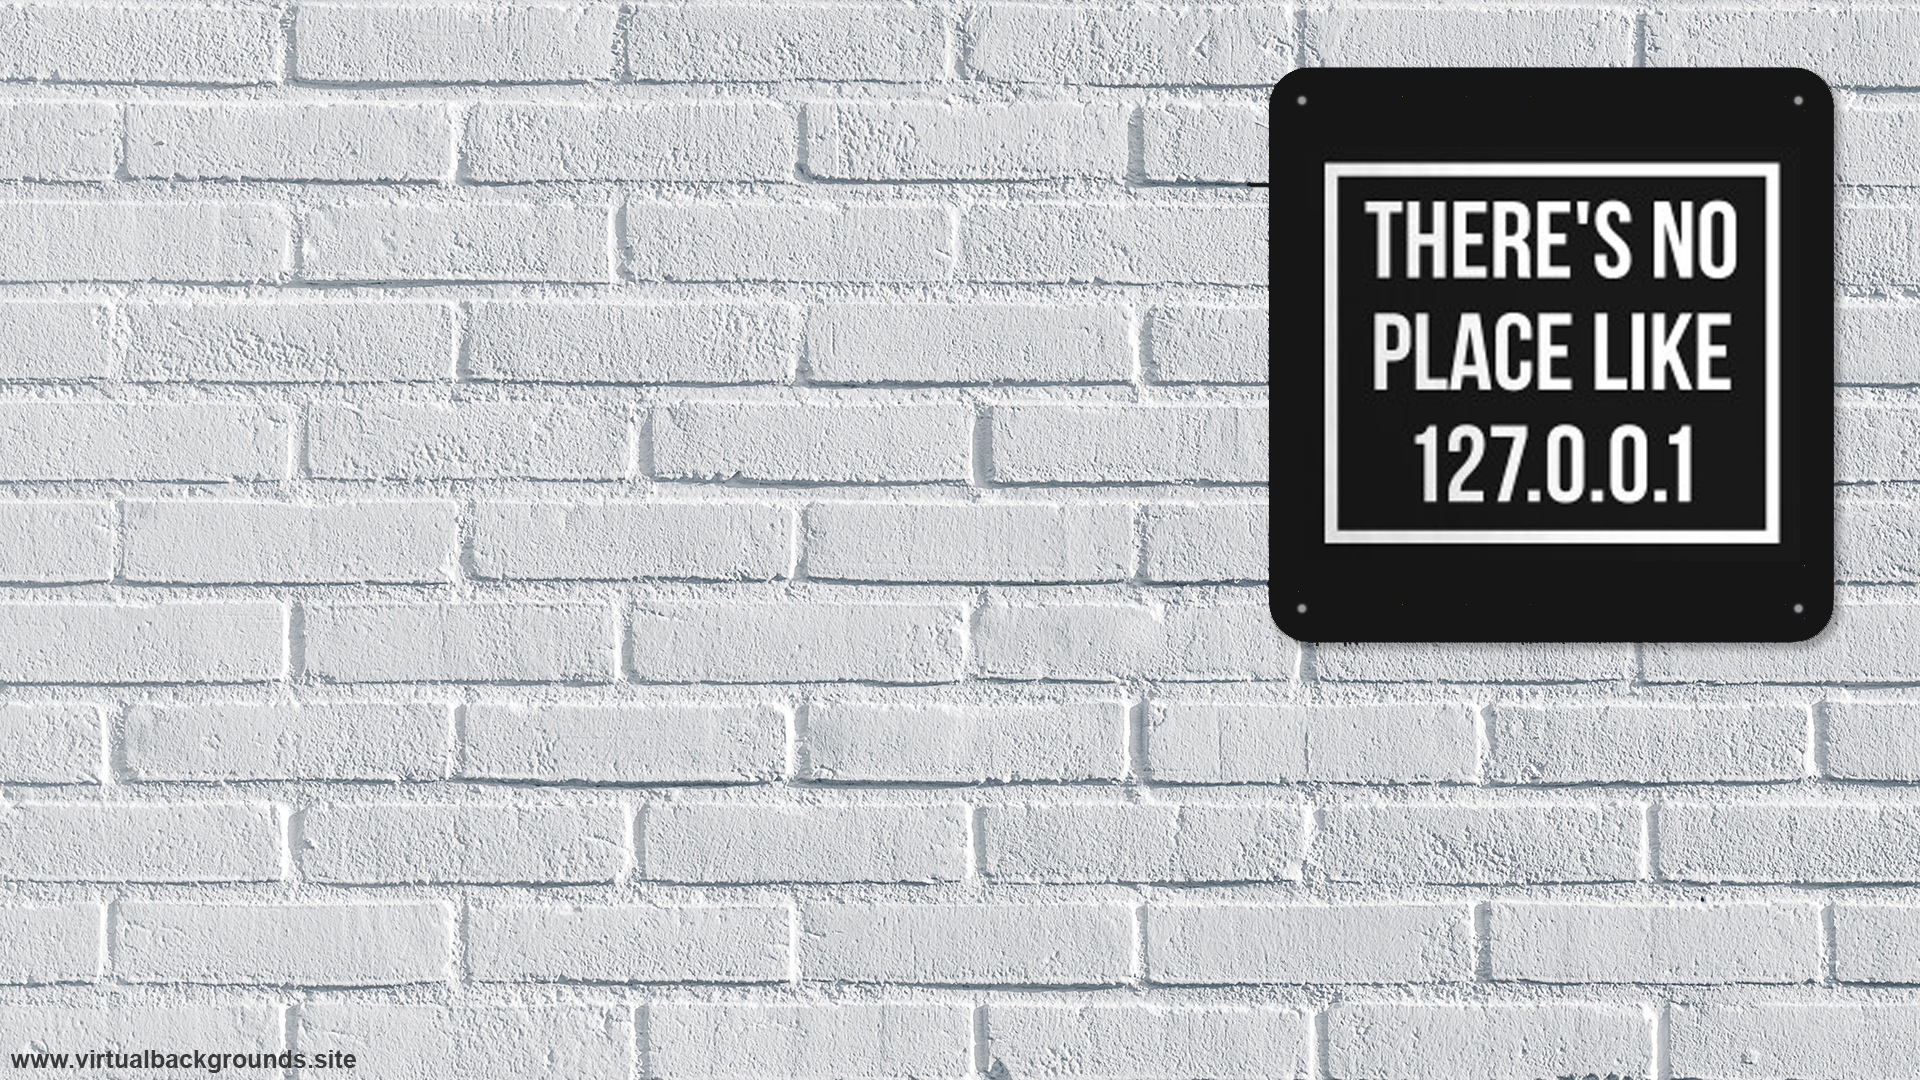 There's no place like 127.0.0.1 plaque. Virtual background to use on Zoom, Microsoft Teams, Skype, Google Meet, WebEx or any other compatible app.